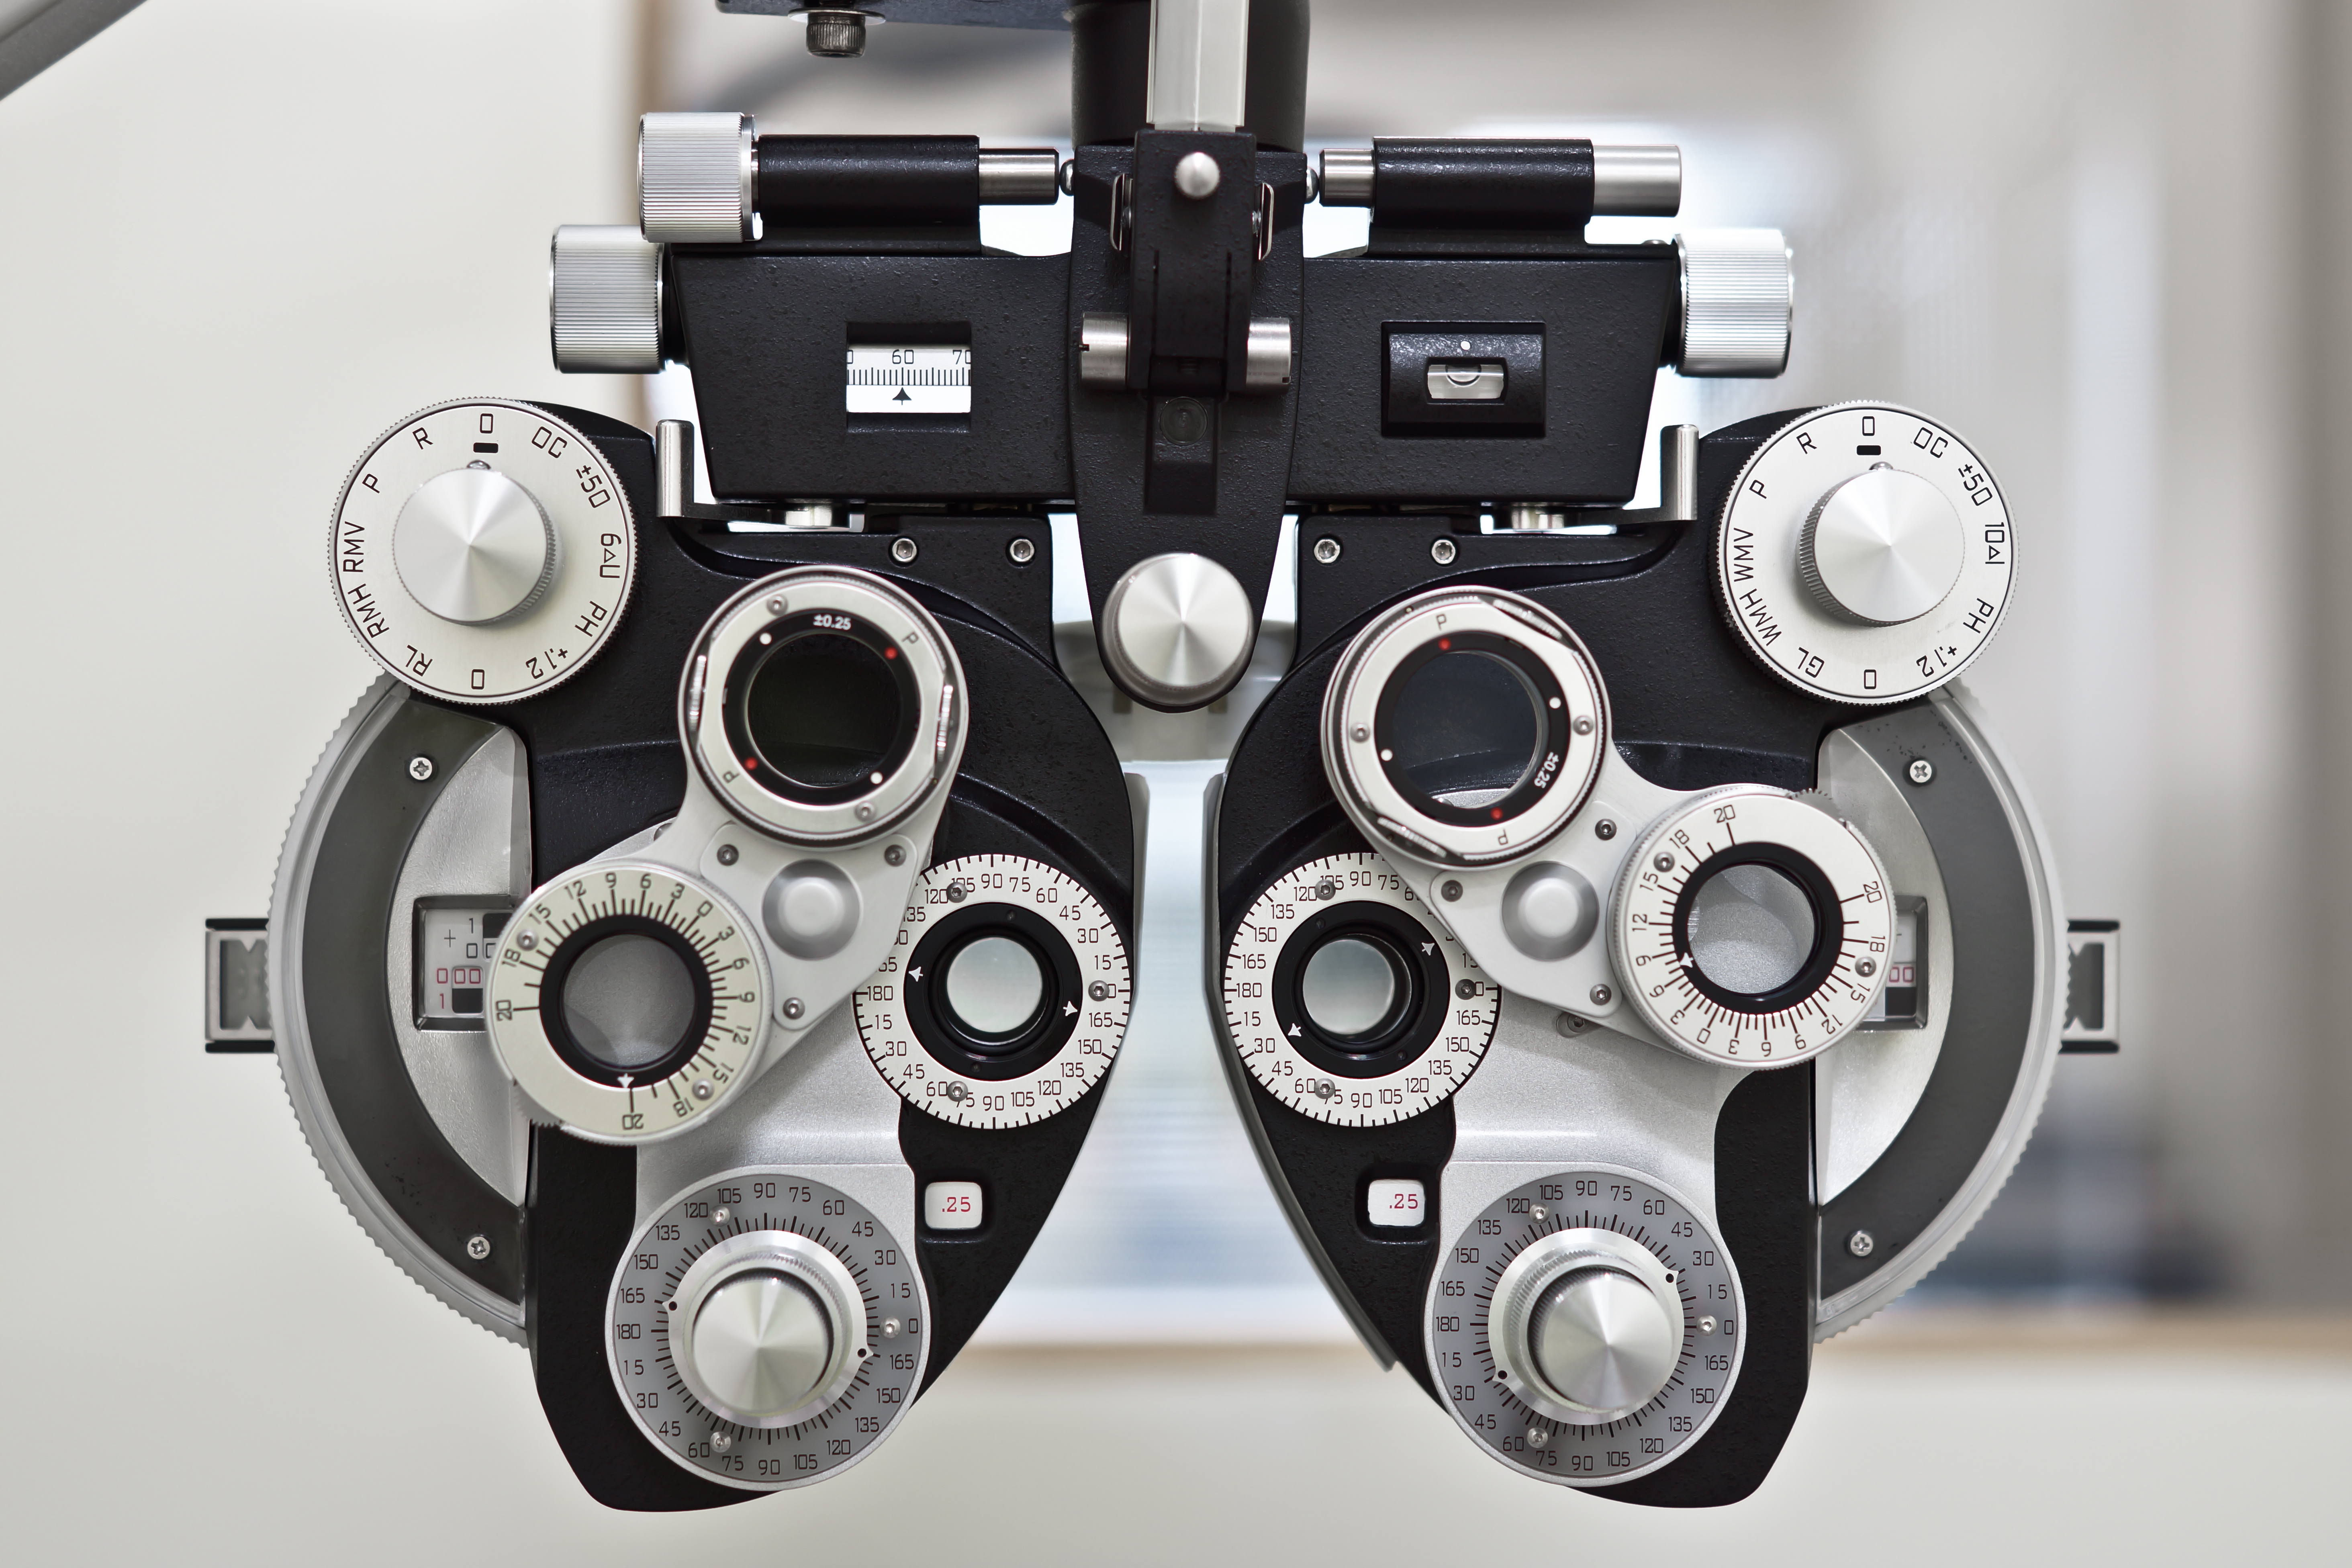 How to pass a texas dps eye test for a license legalbeagle nvjuhfo Image collections